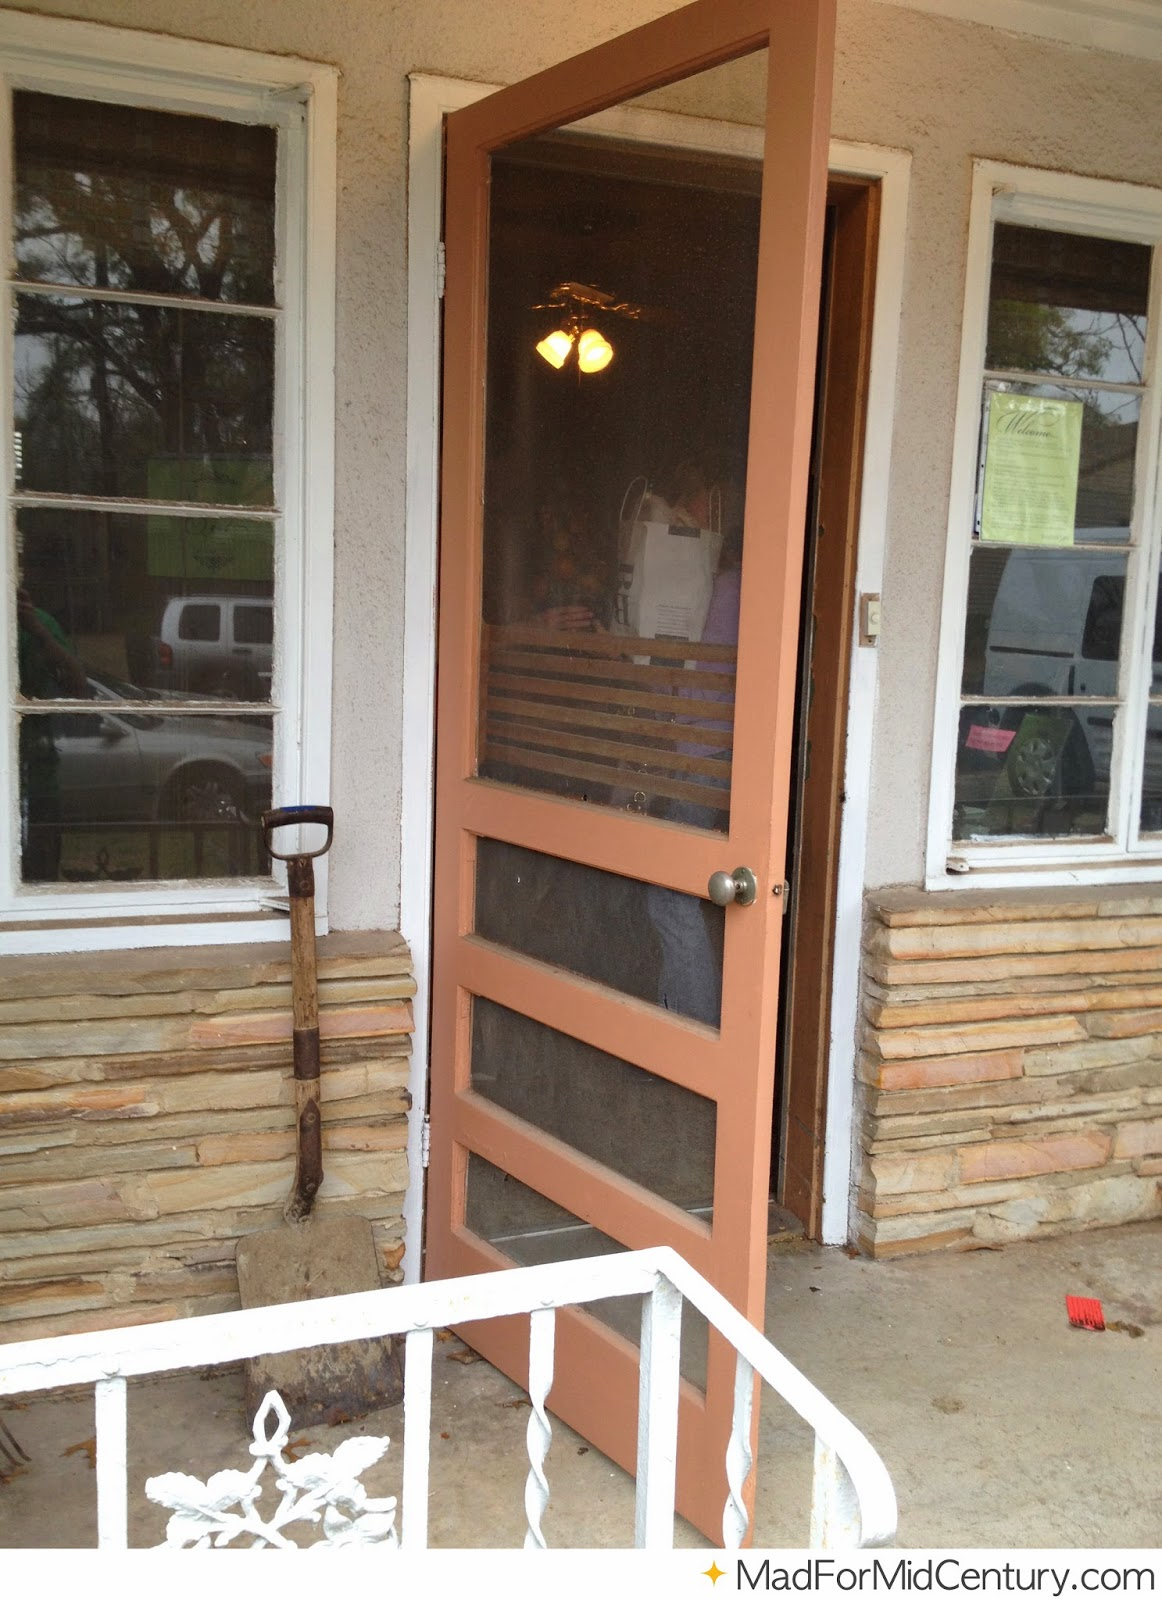 Mad For Mid Century Brown Vintage Screen Door On A Mid Century Home